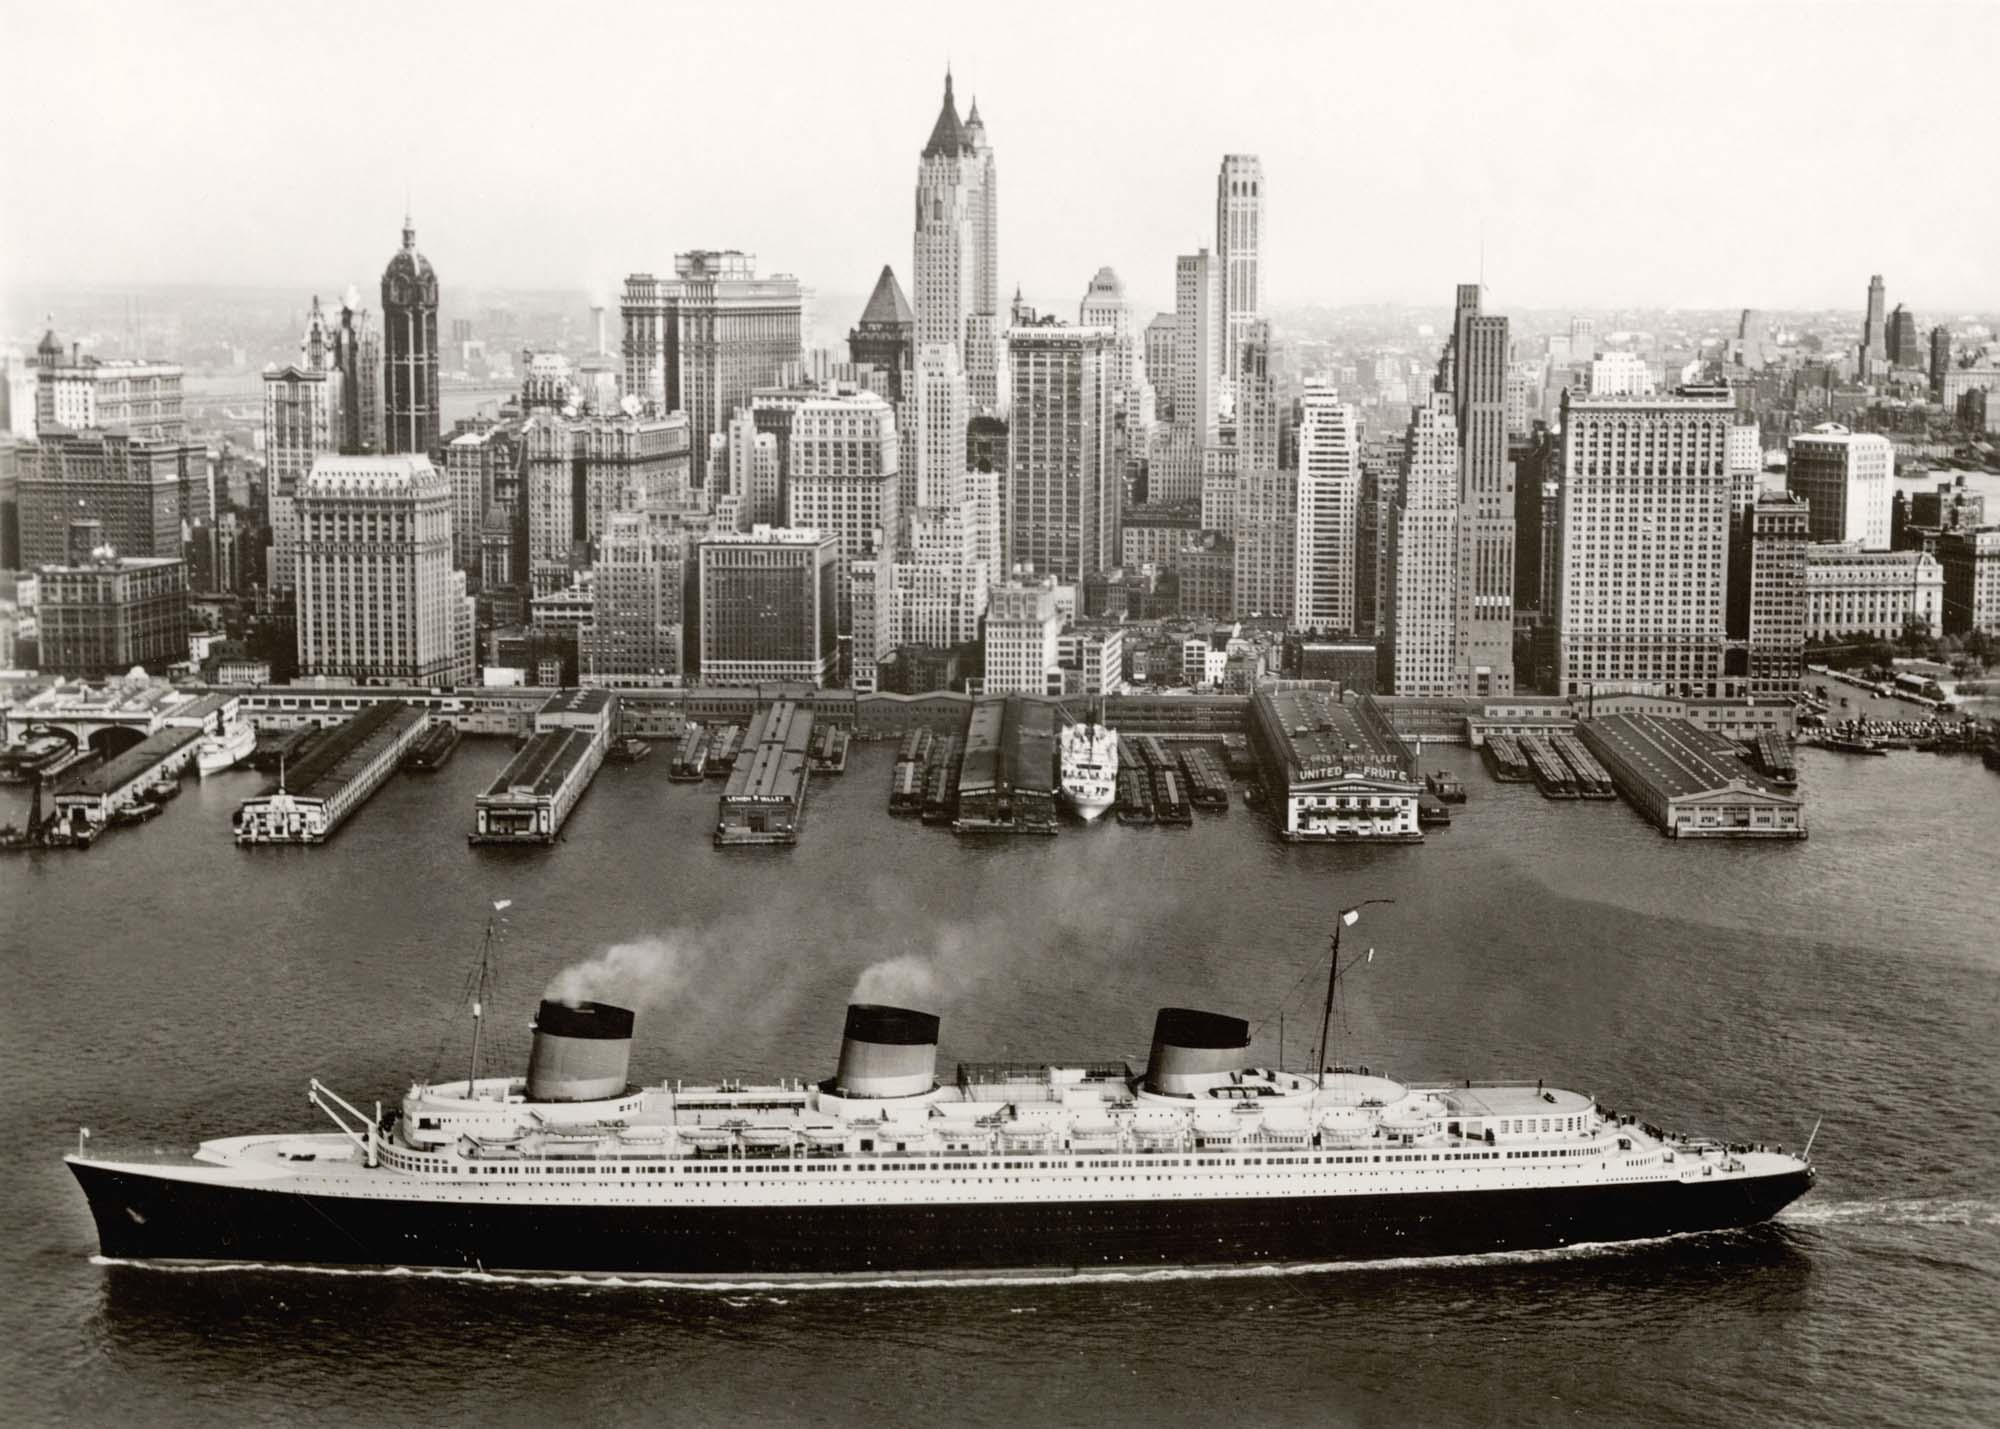 a black and white photo of a large Ocean liner in New York docks